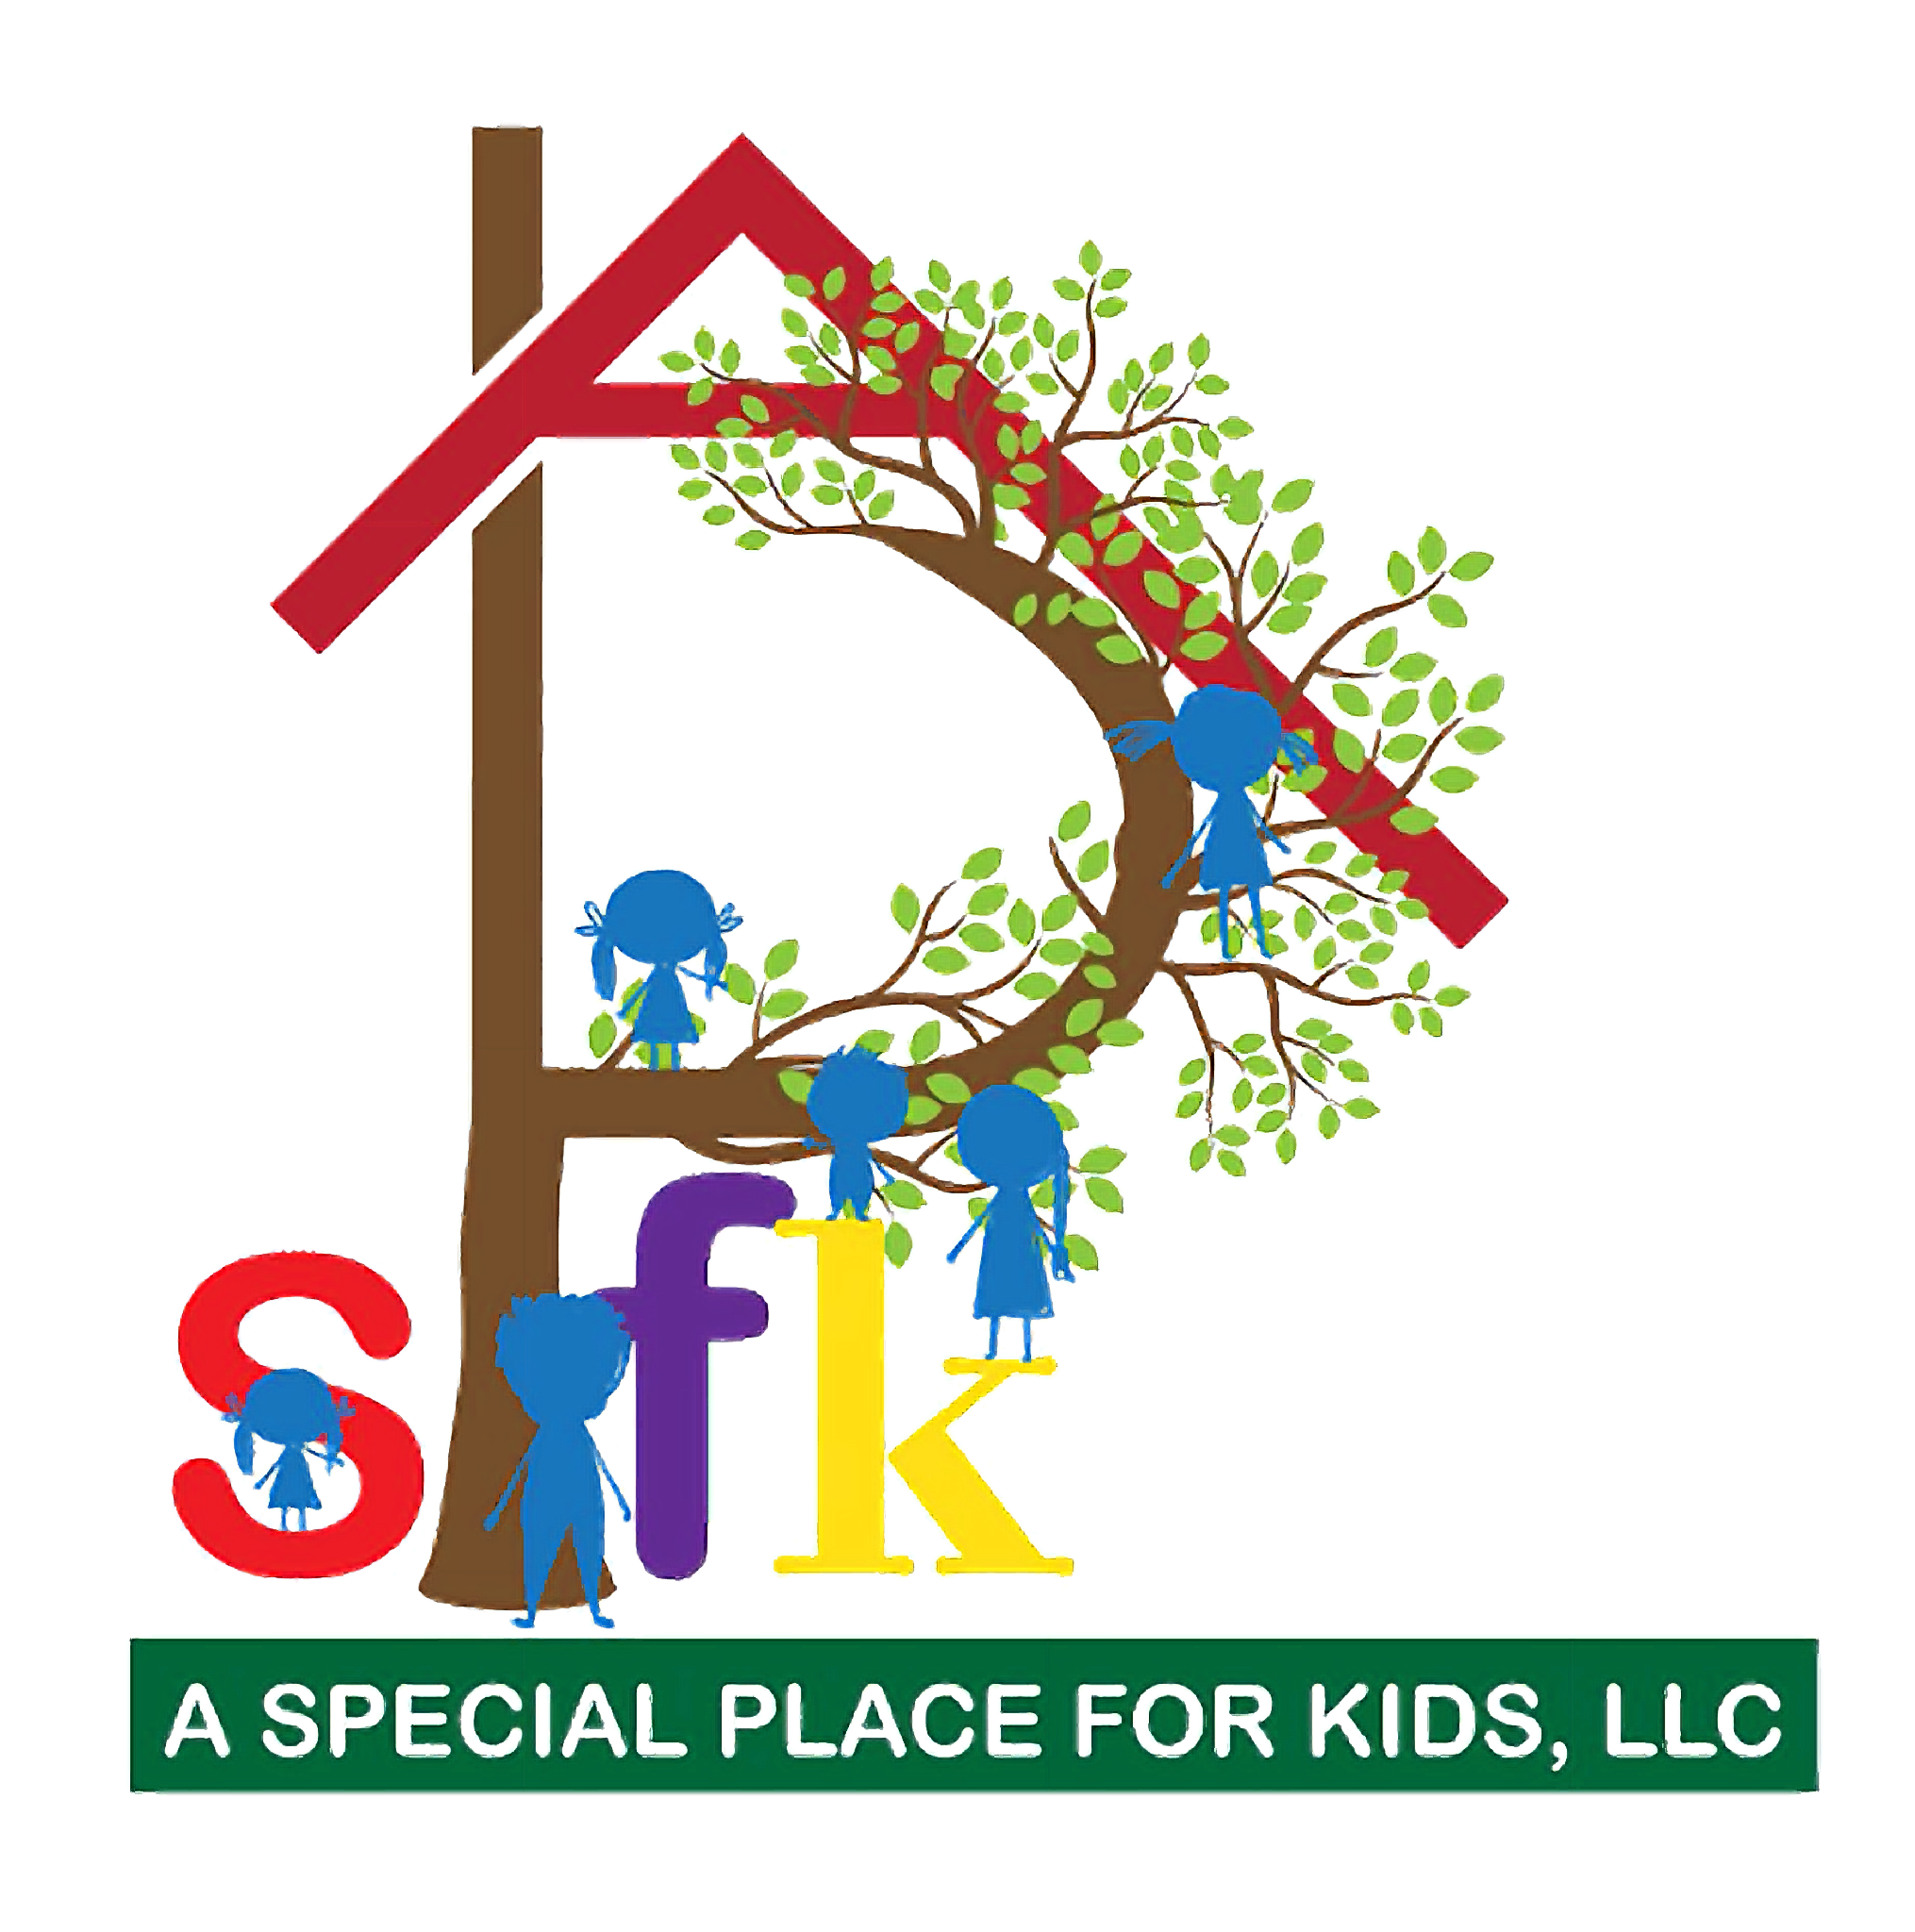 A Special Place for Kids LLC